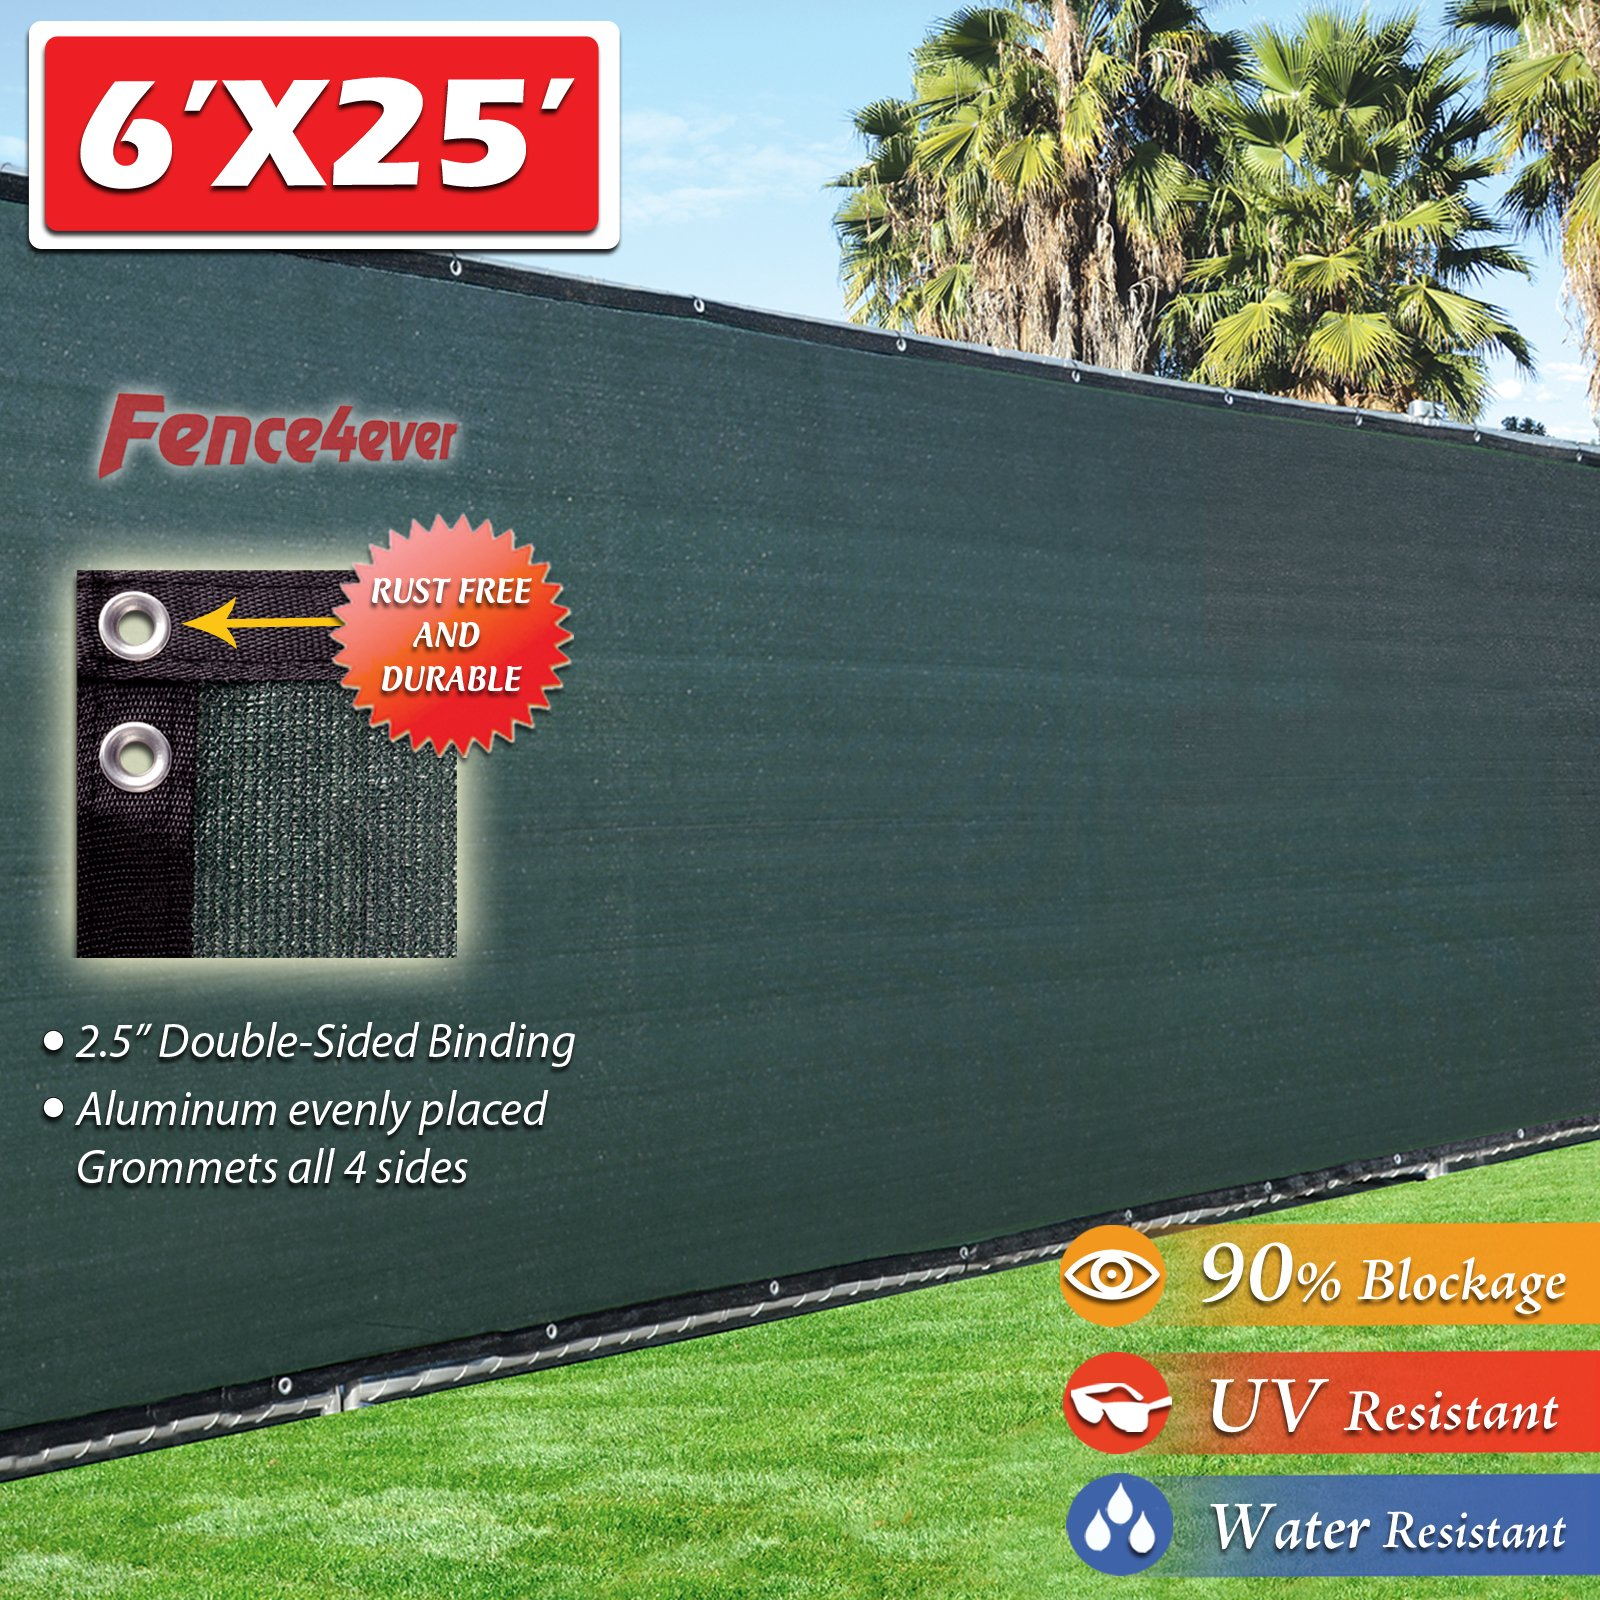 Fence4ever 6'x25' 3rd Gen Dark Green Fence Privacy Screen Windscreen Shade Cover Mesh Fabric (Aluminum Grommets) Home, Court, or Construction